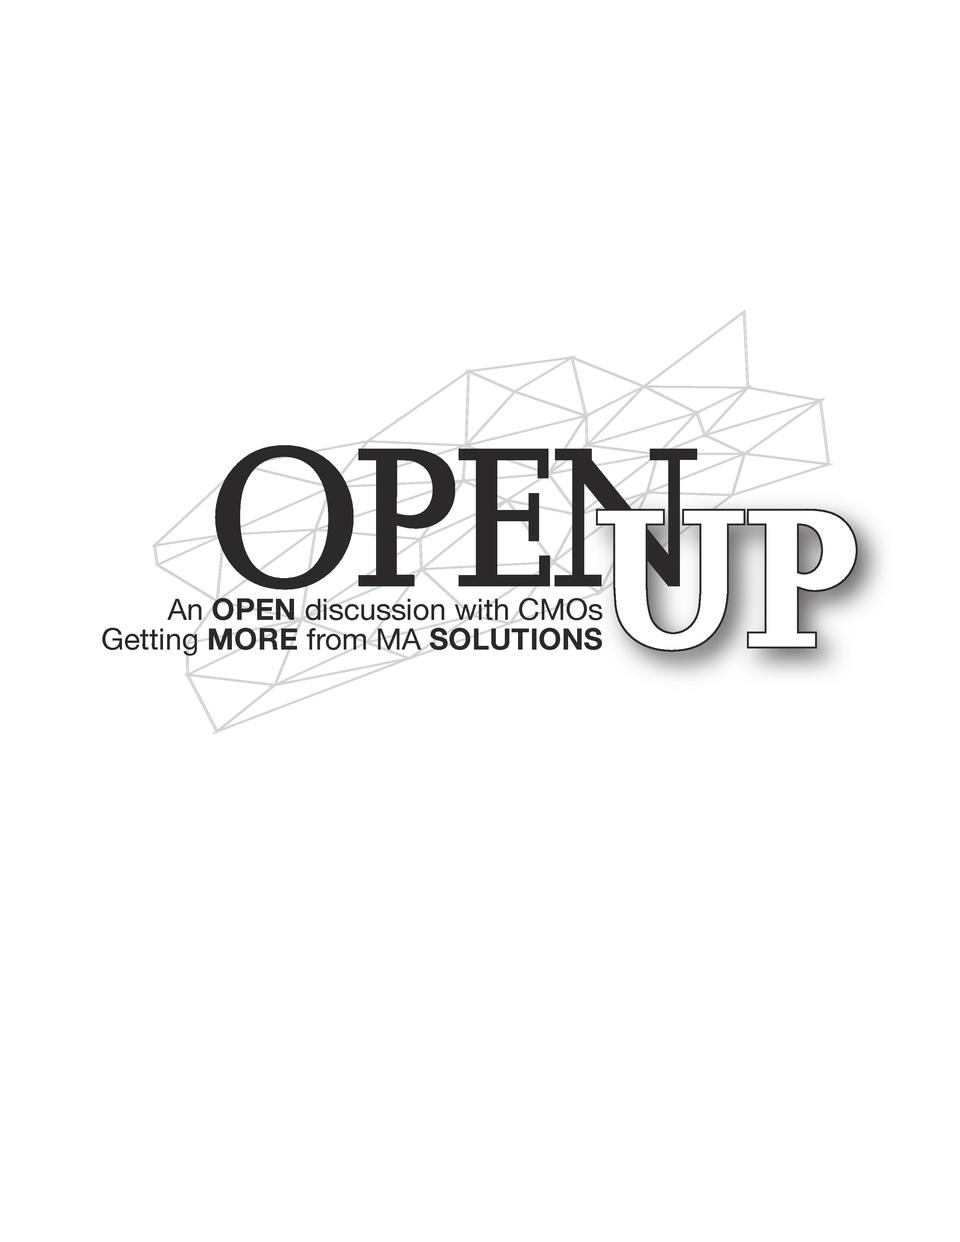 OPEN UP  An OPEN discussion with CMOs Getting MORE from MA SOLUTIONS